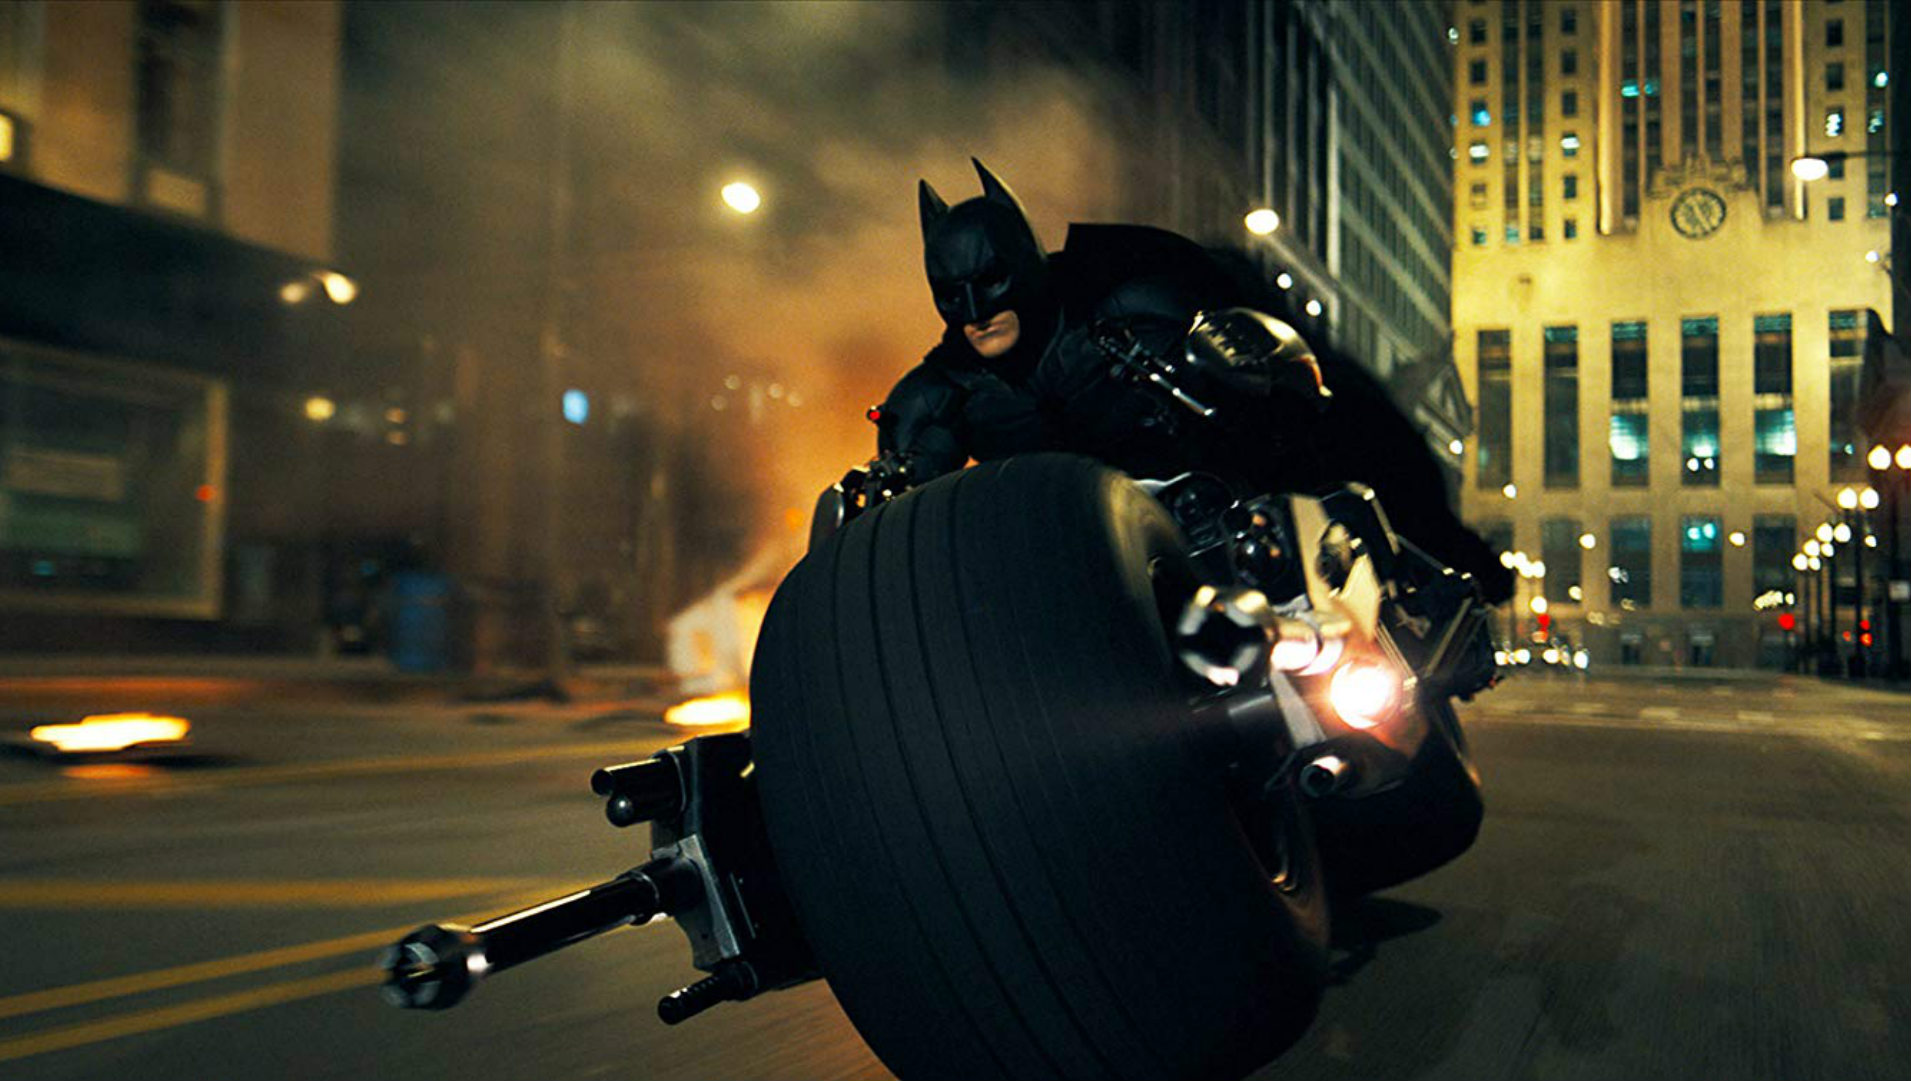 Cinesphere Presents Christopher Nolan's Dark Knight Trilogy Marathon